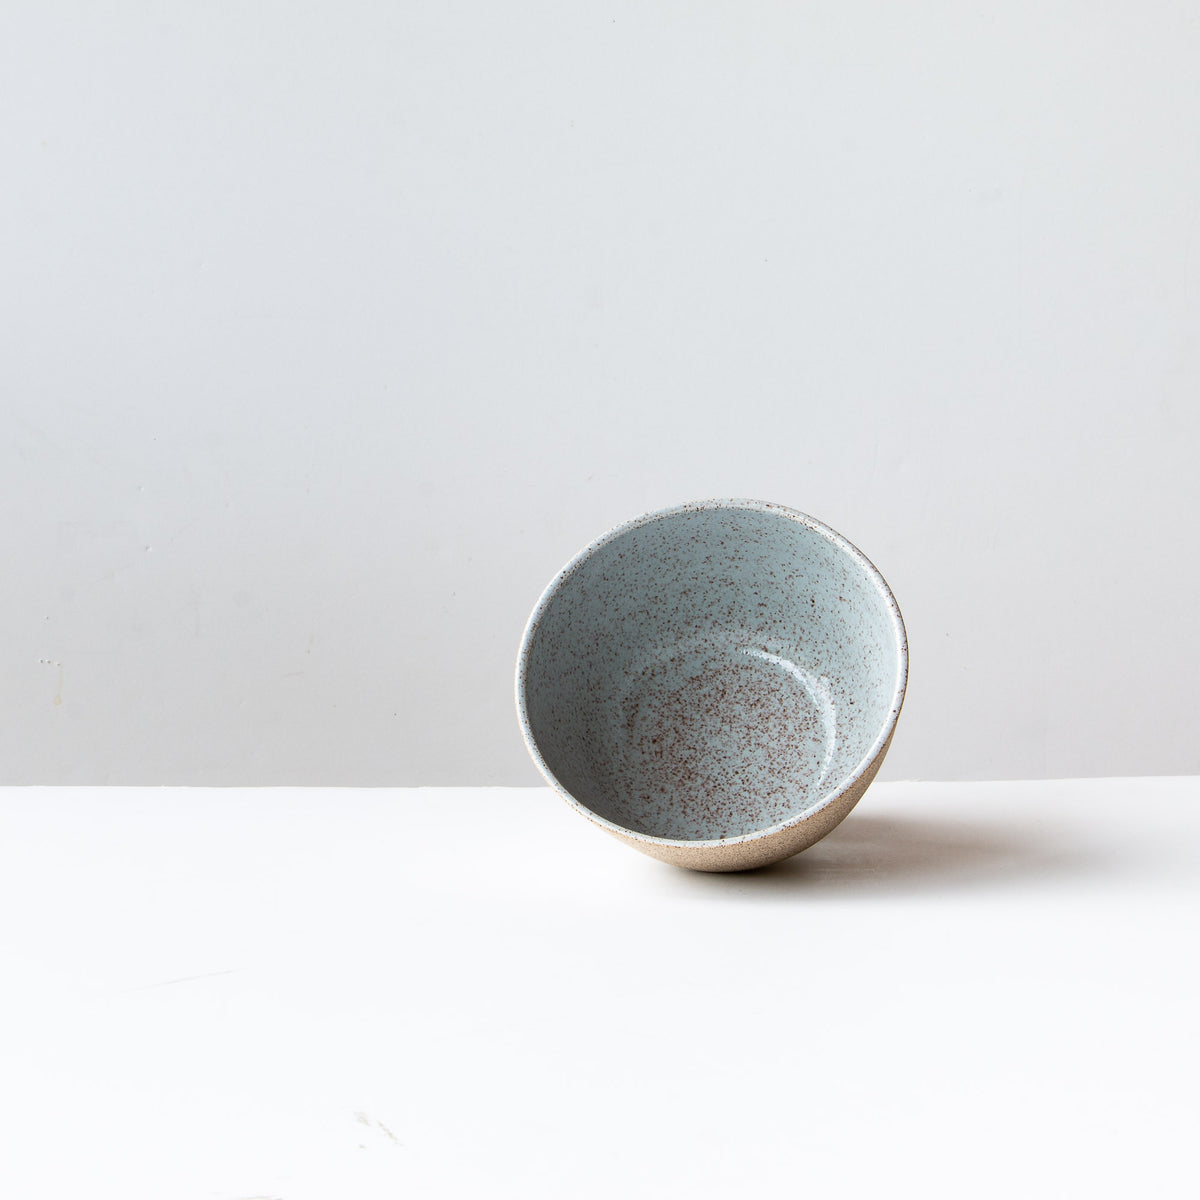 Pale Blue Glaze Interior Detail - Speckled Stoneware Bowl - Pale Blue Glaze - Sold by Chic & Basta